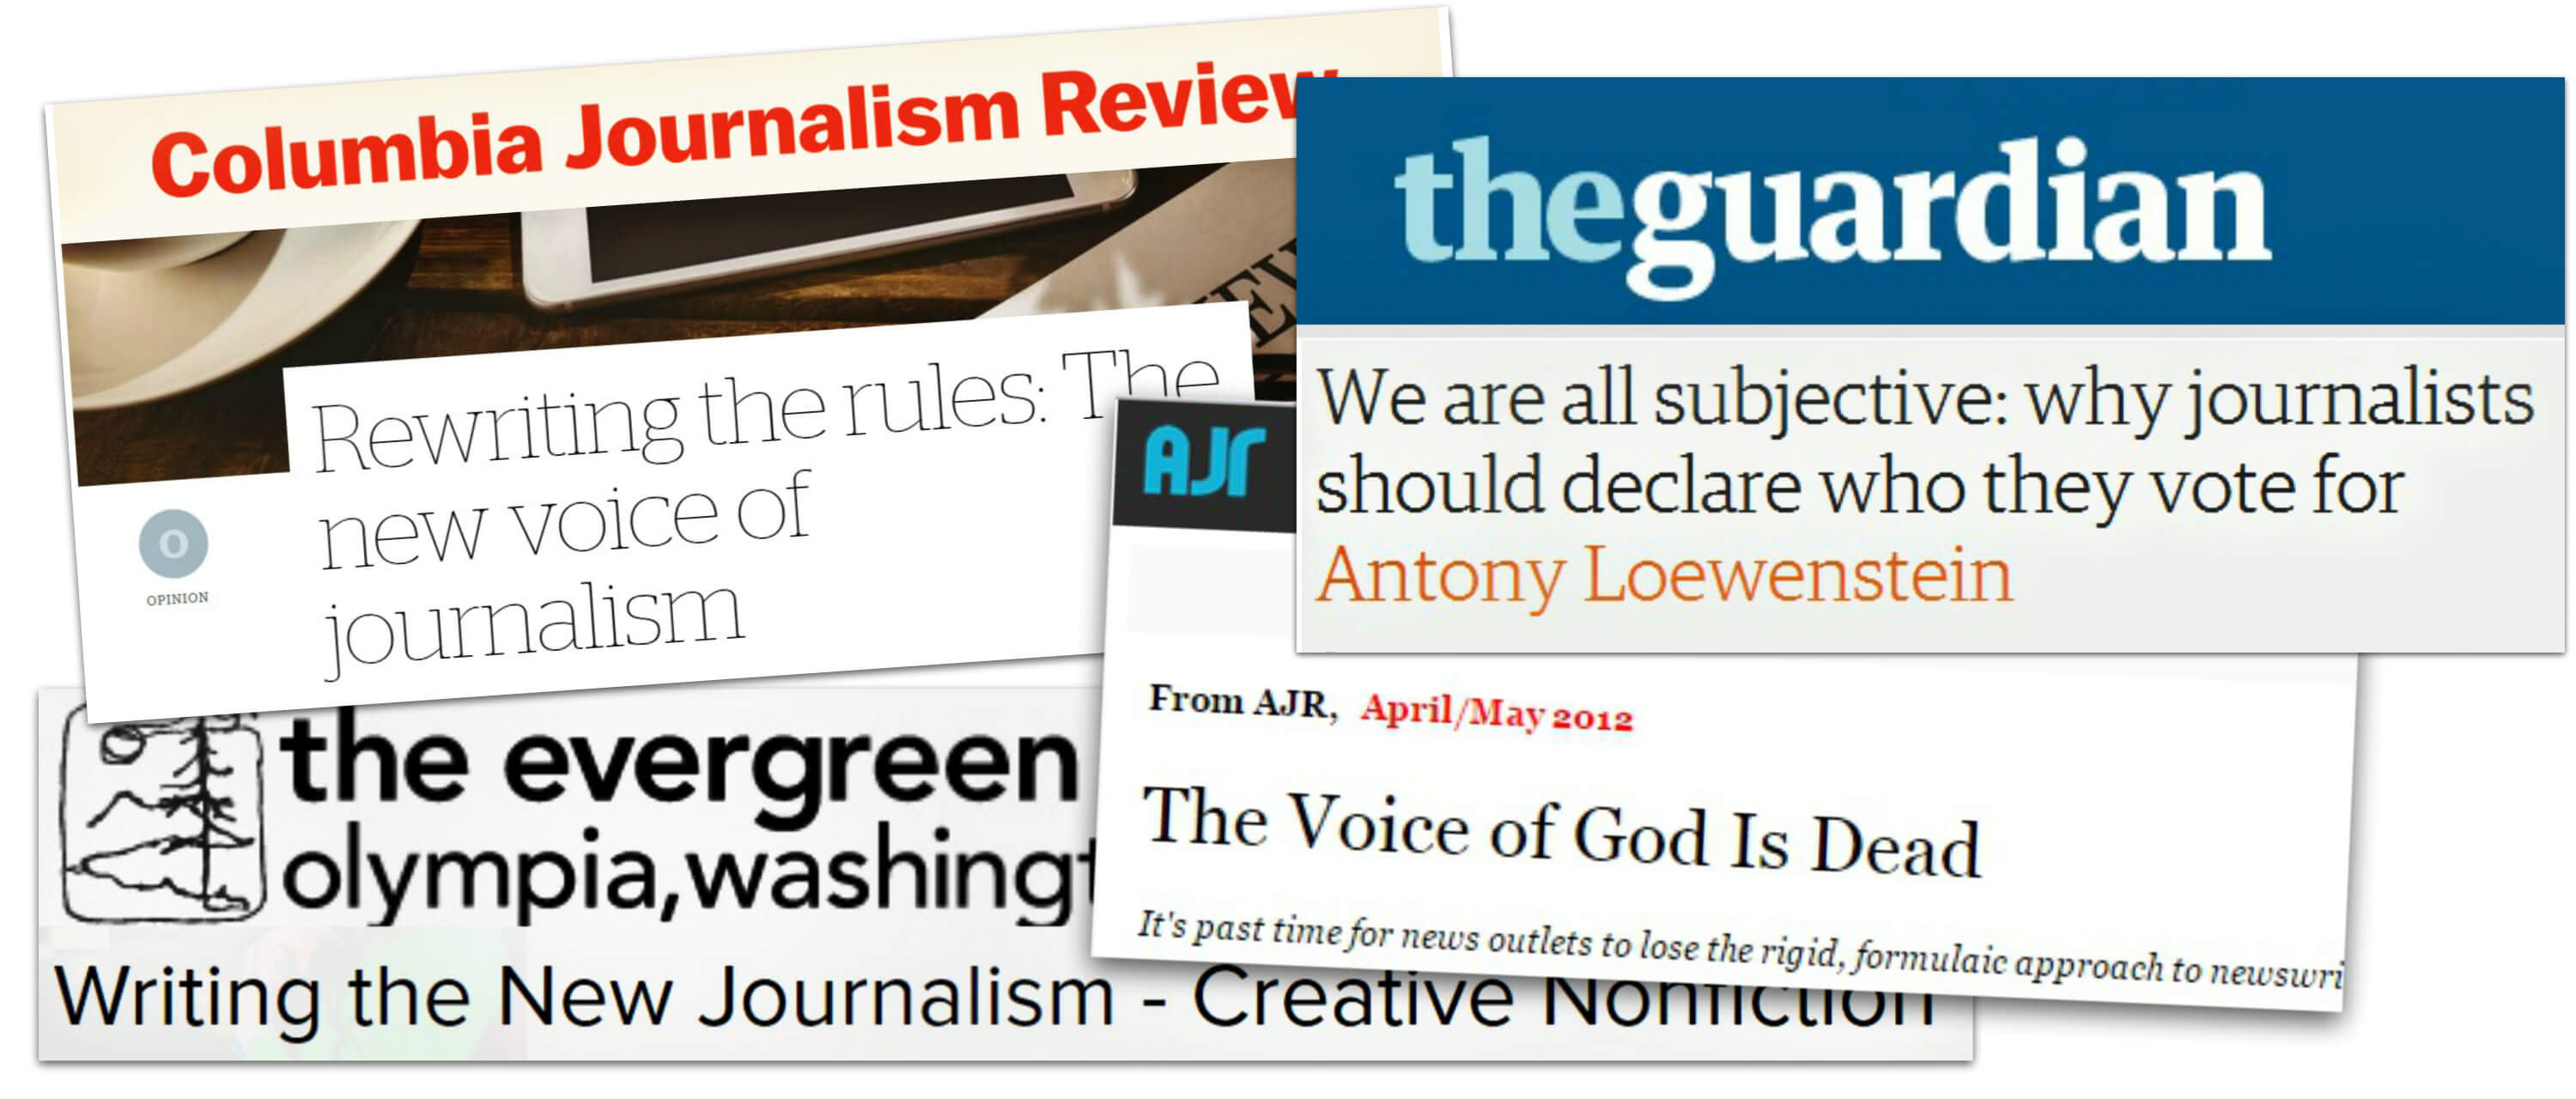 Eastfallslocal collage journalism headlines